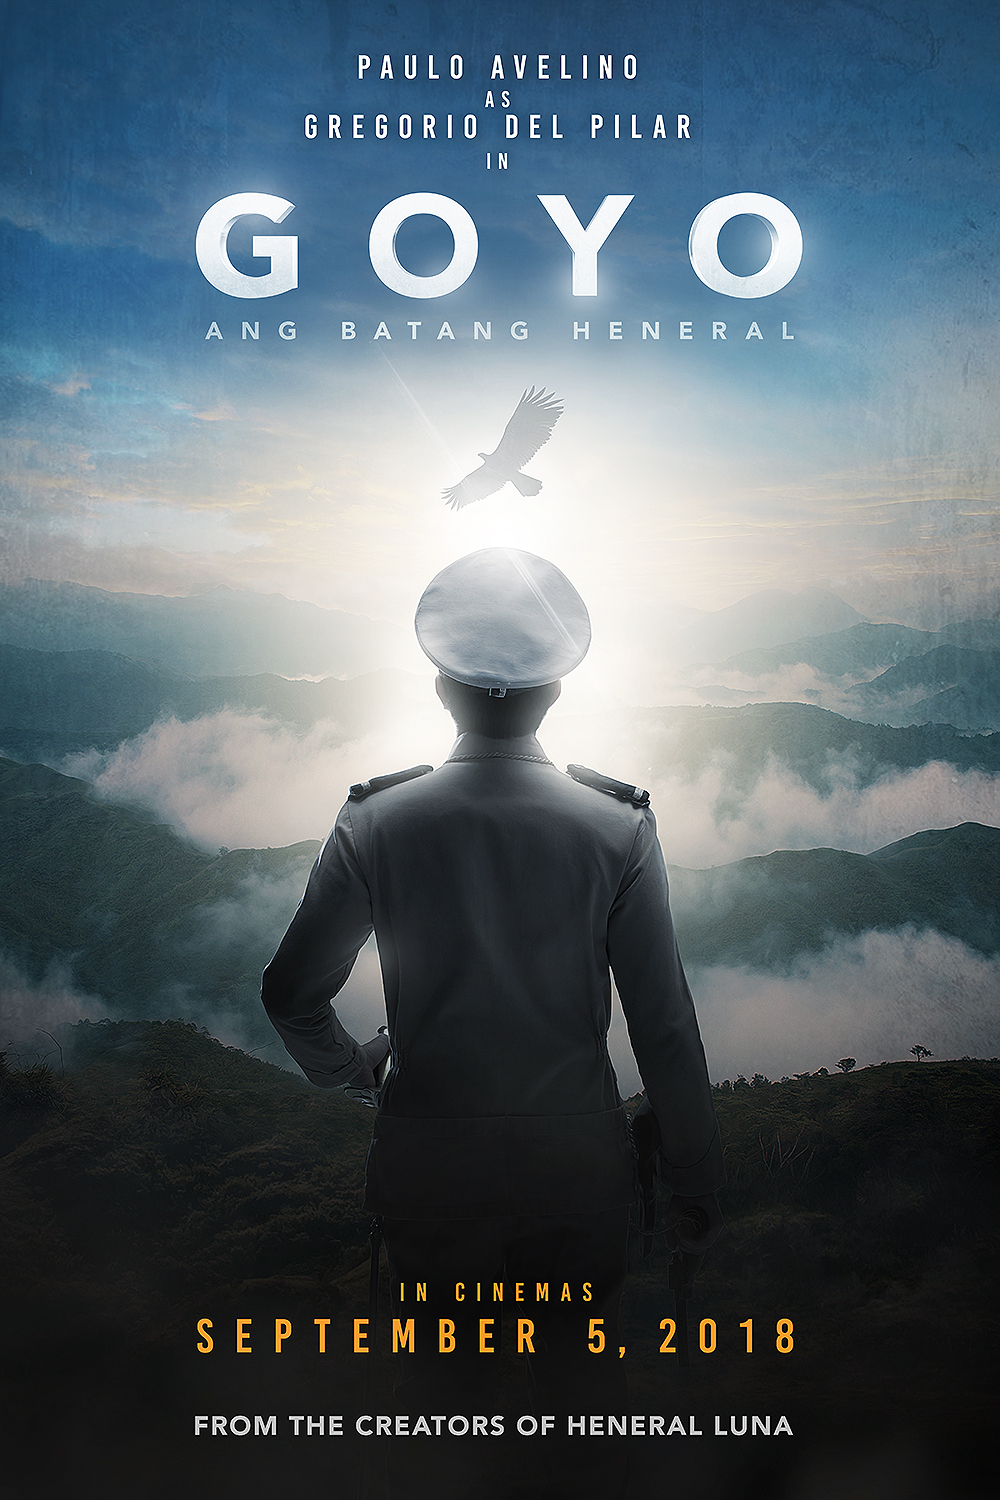 Sm Cinema Proudly Presents The Philippines Biggest Cinematic Epic Mld Black 16 Batang Catch Goyo Ang Heneral In Branches Nationwide Starting September 5 2018 Book Your Tickets Through Website Smcinemacom Or